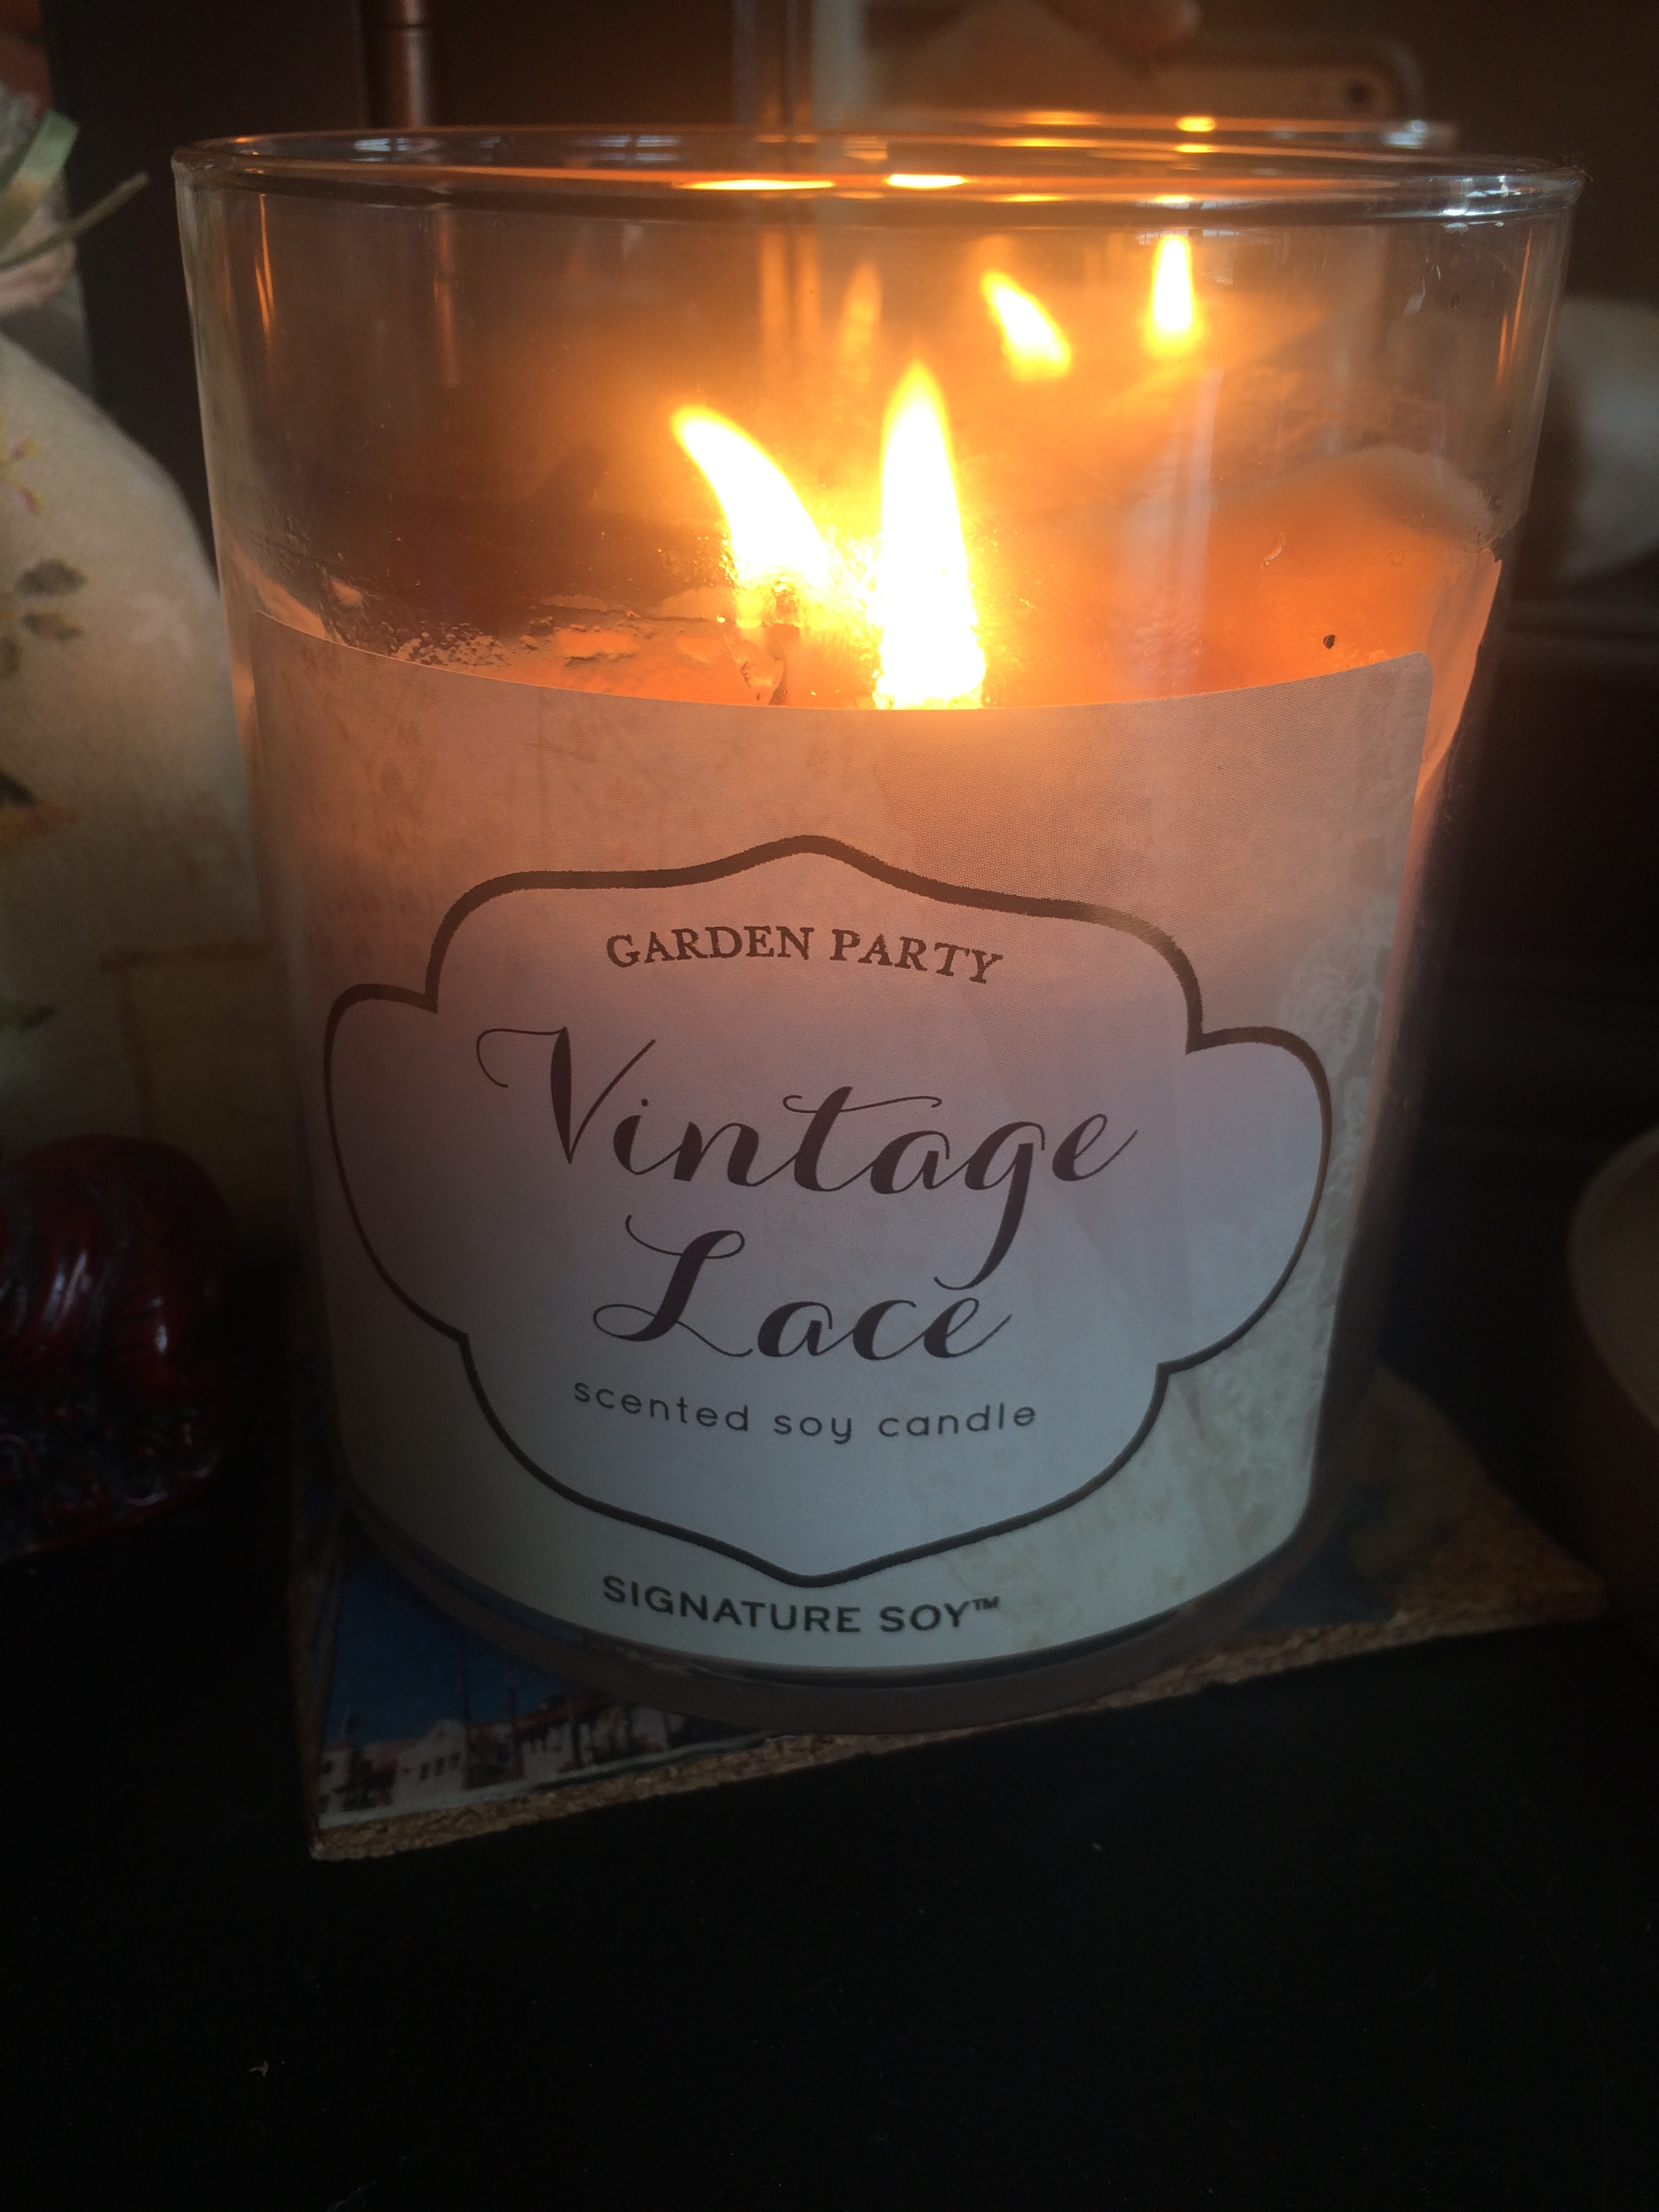 Most Fragrant Candles Favorite Friday Target Signature Soy Candles Rebecca S